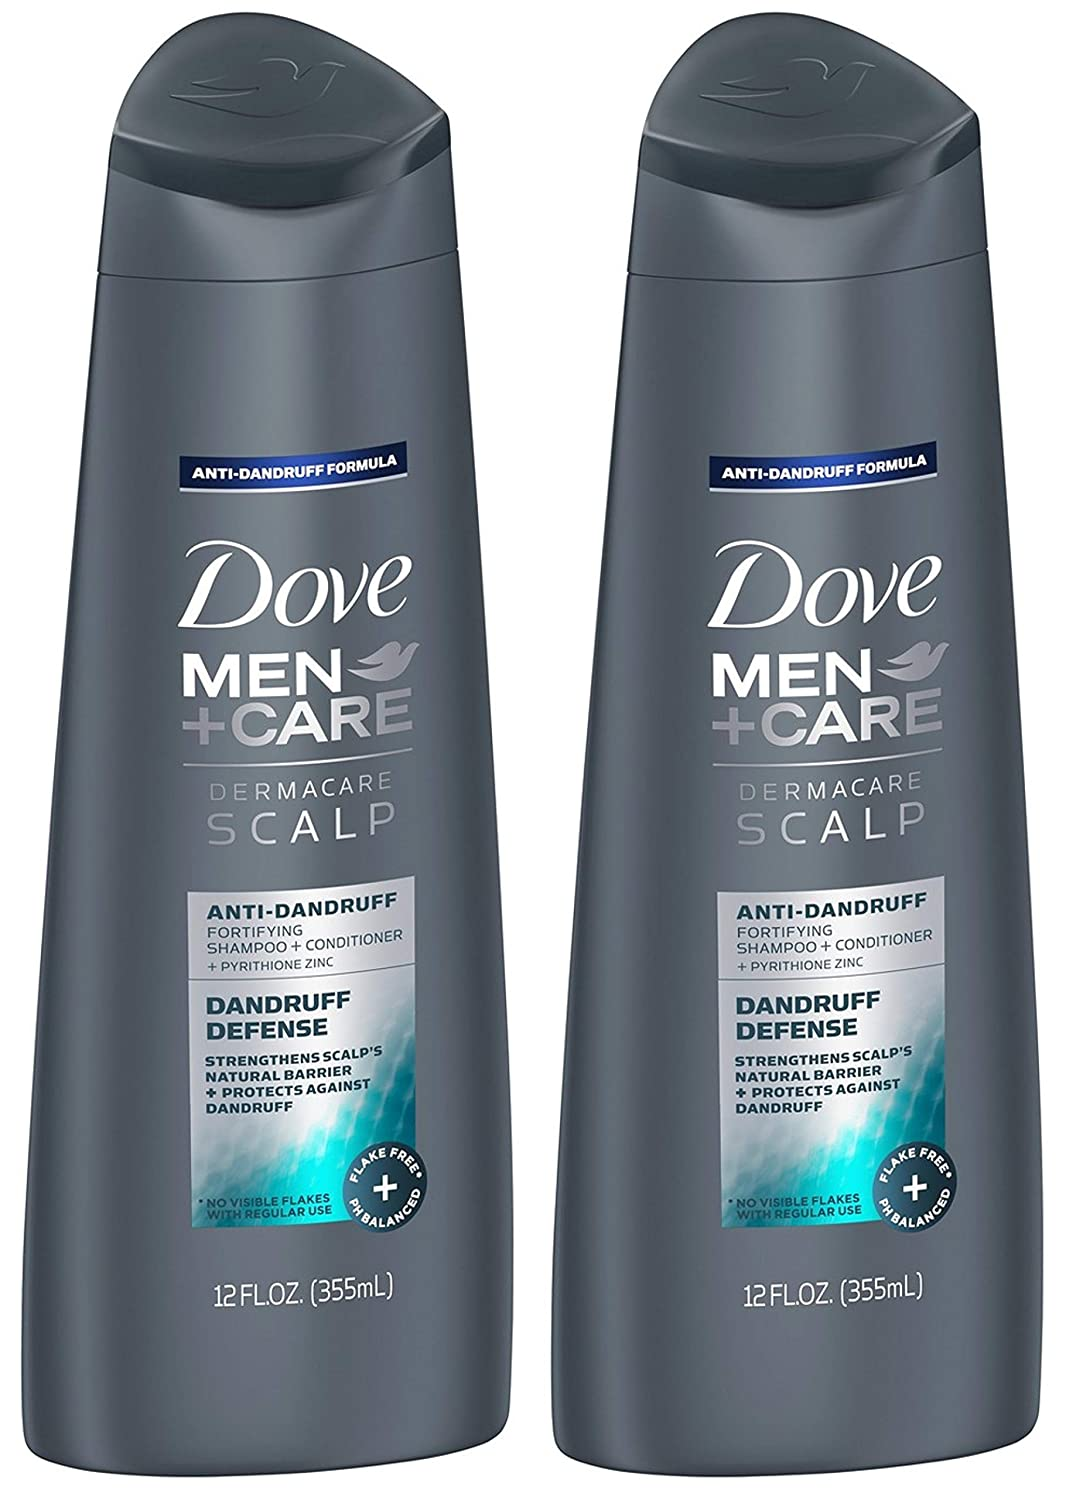 Dove Men+Care Dermacare Scalp 2-in-1 Shampoo + Conditioner, Dandruff Defense, 12 Ounce (Pack of 2)